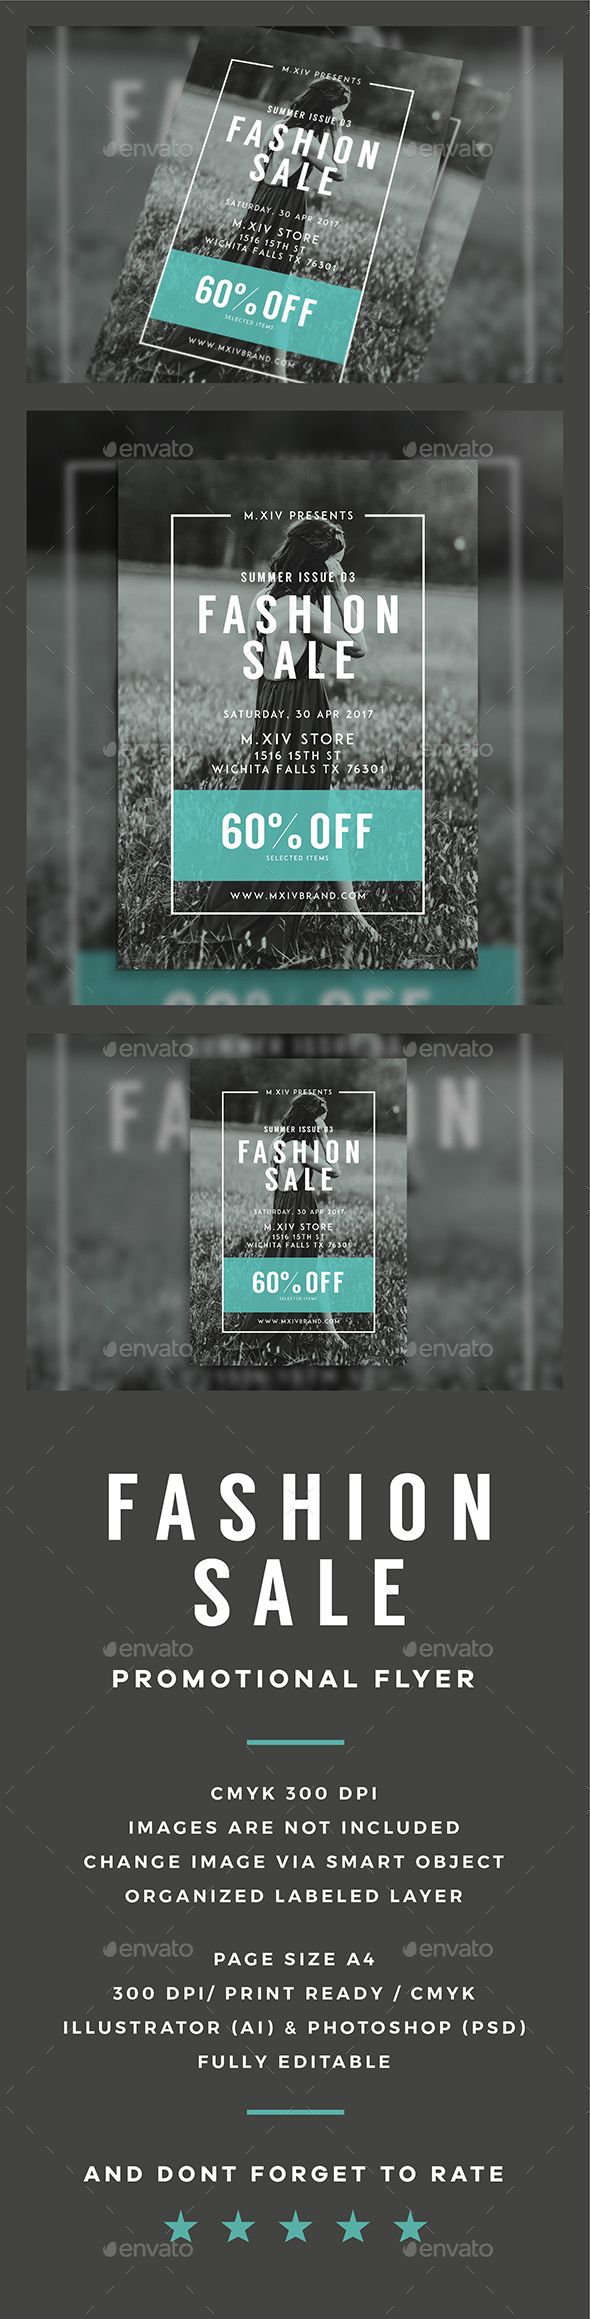 Fashion Sale Flyer Pinterest Sale Flyer Ai Illustrator And - Sales flyer template photoshop